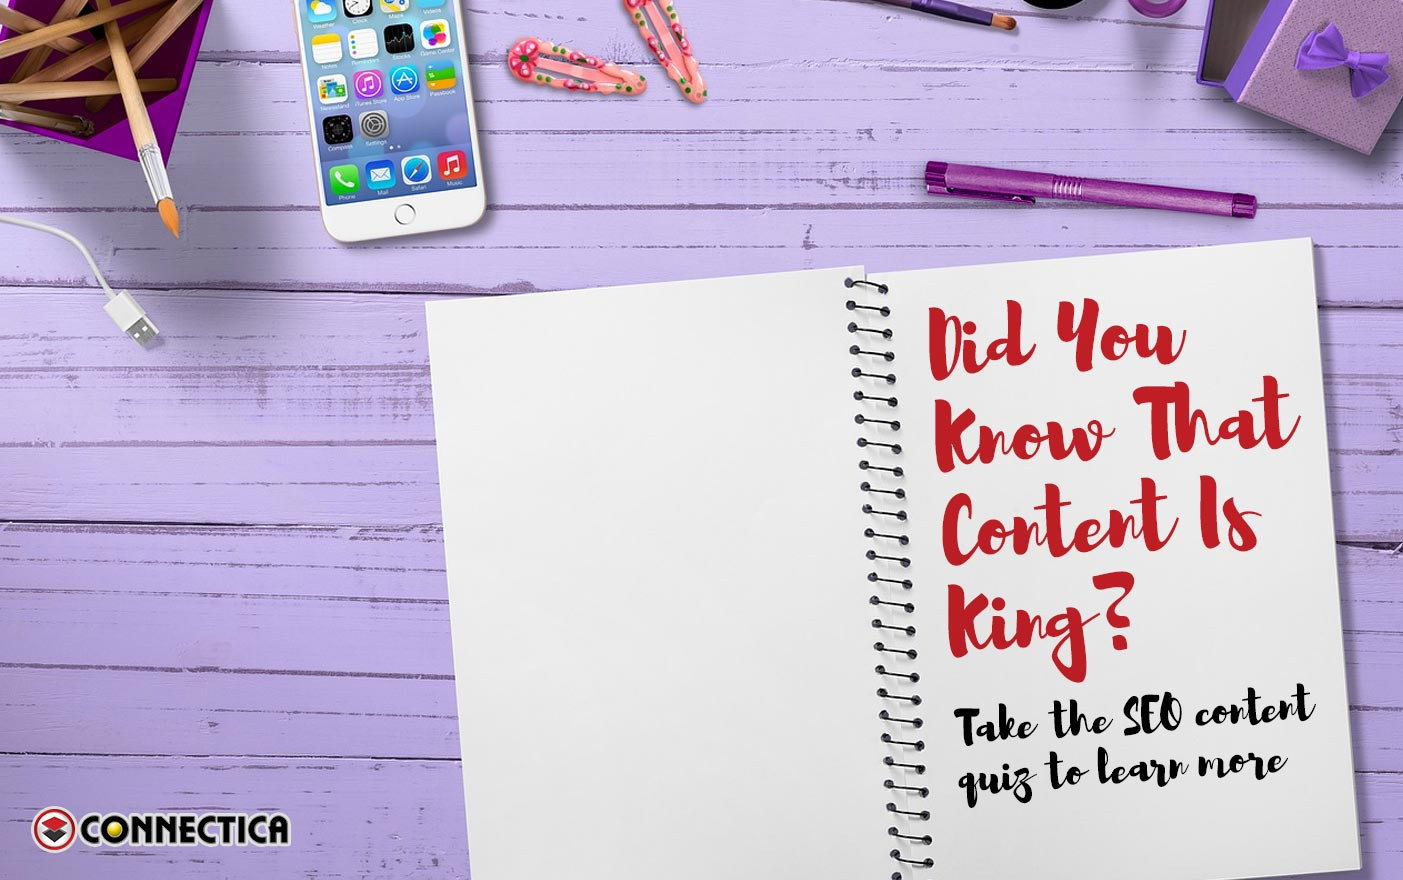 Quiz: Did You Know That Content Is King?